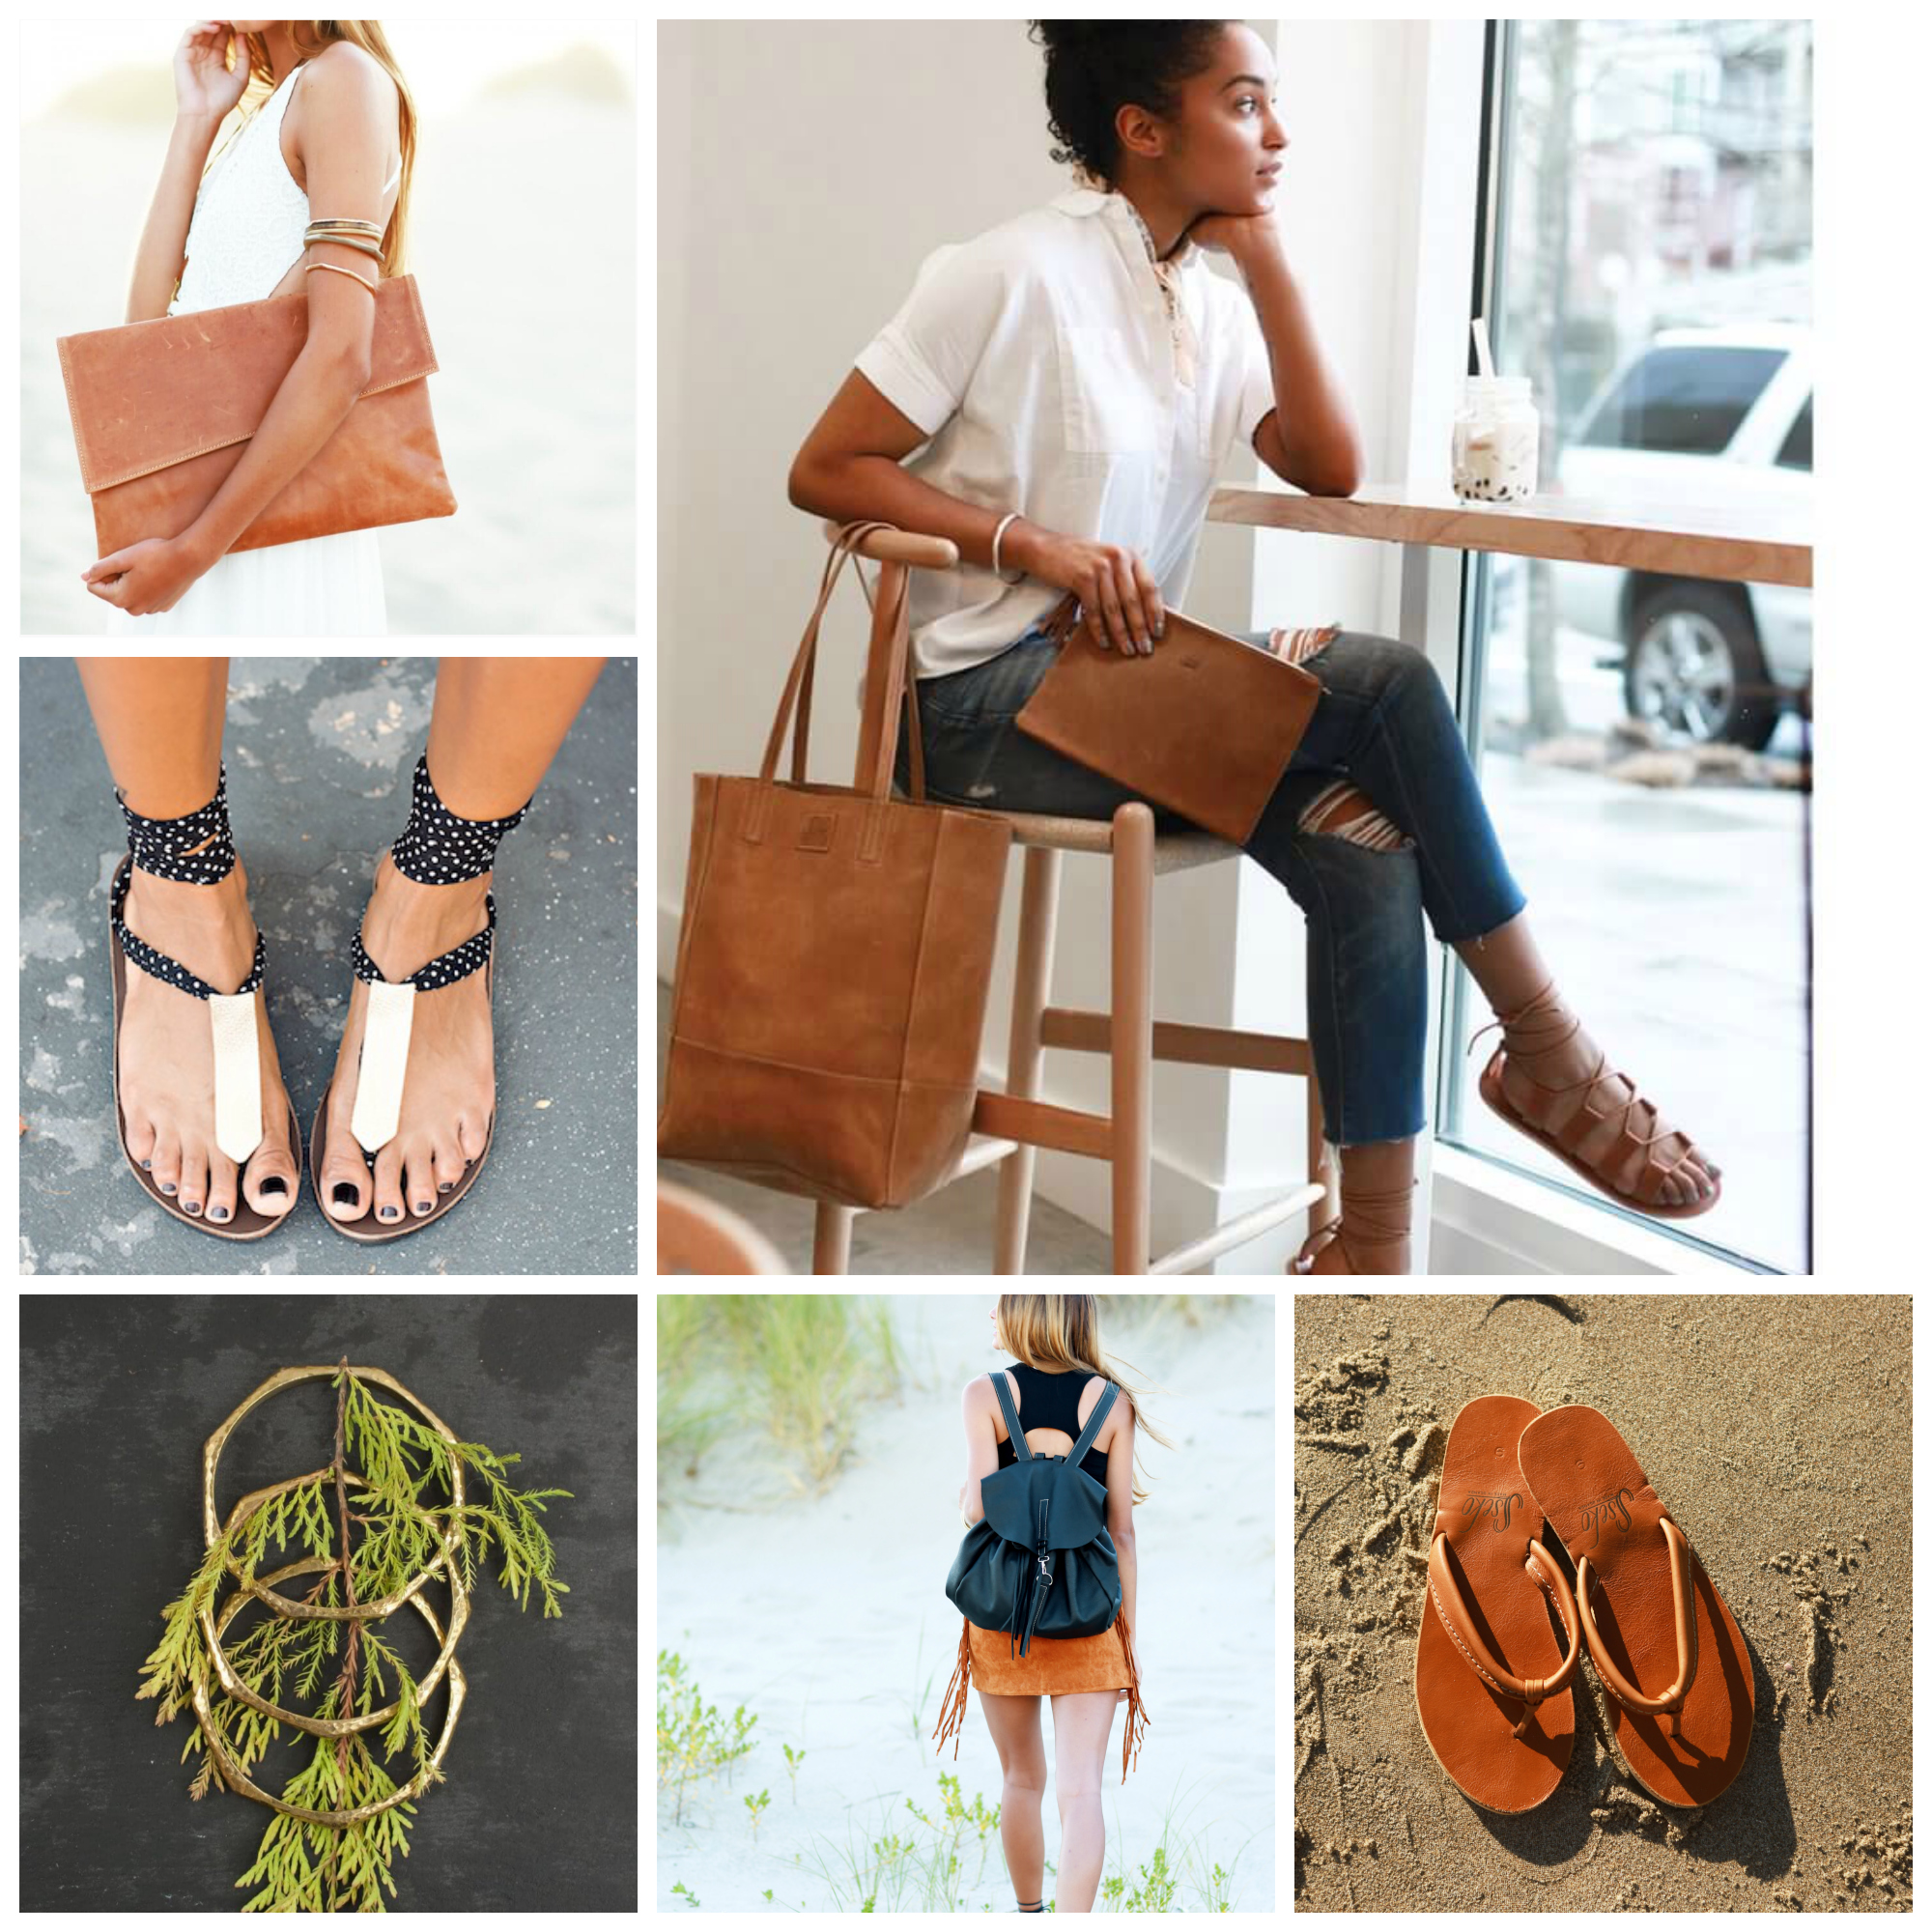 Support the Kindred League by shopping Sseko! - Leather purses, pretty sandals, and unique jewelry - OH MY! Seriously. Do some window shopping and see why we're so in LOVE with these products.